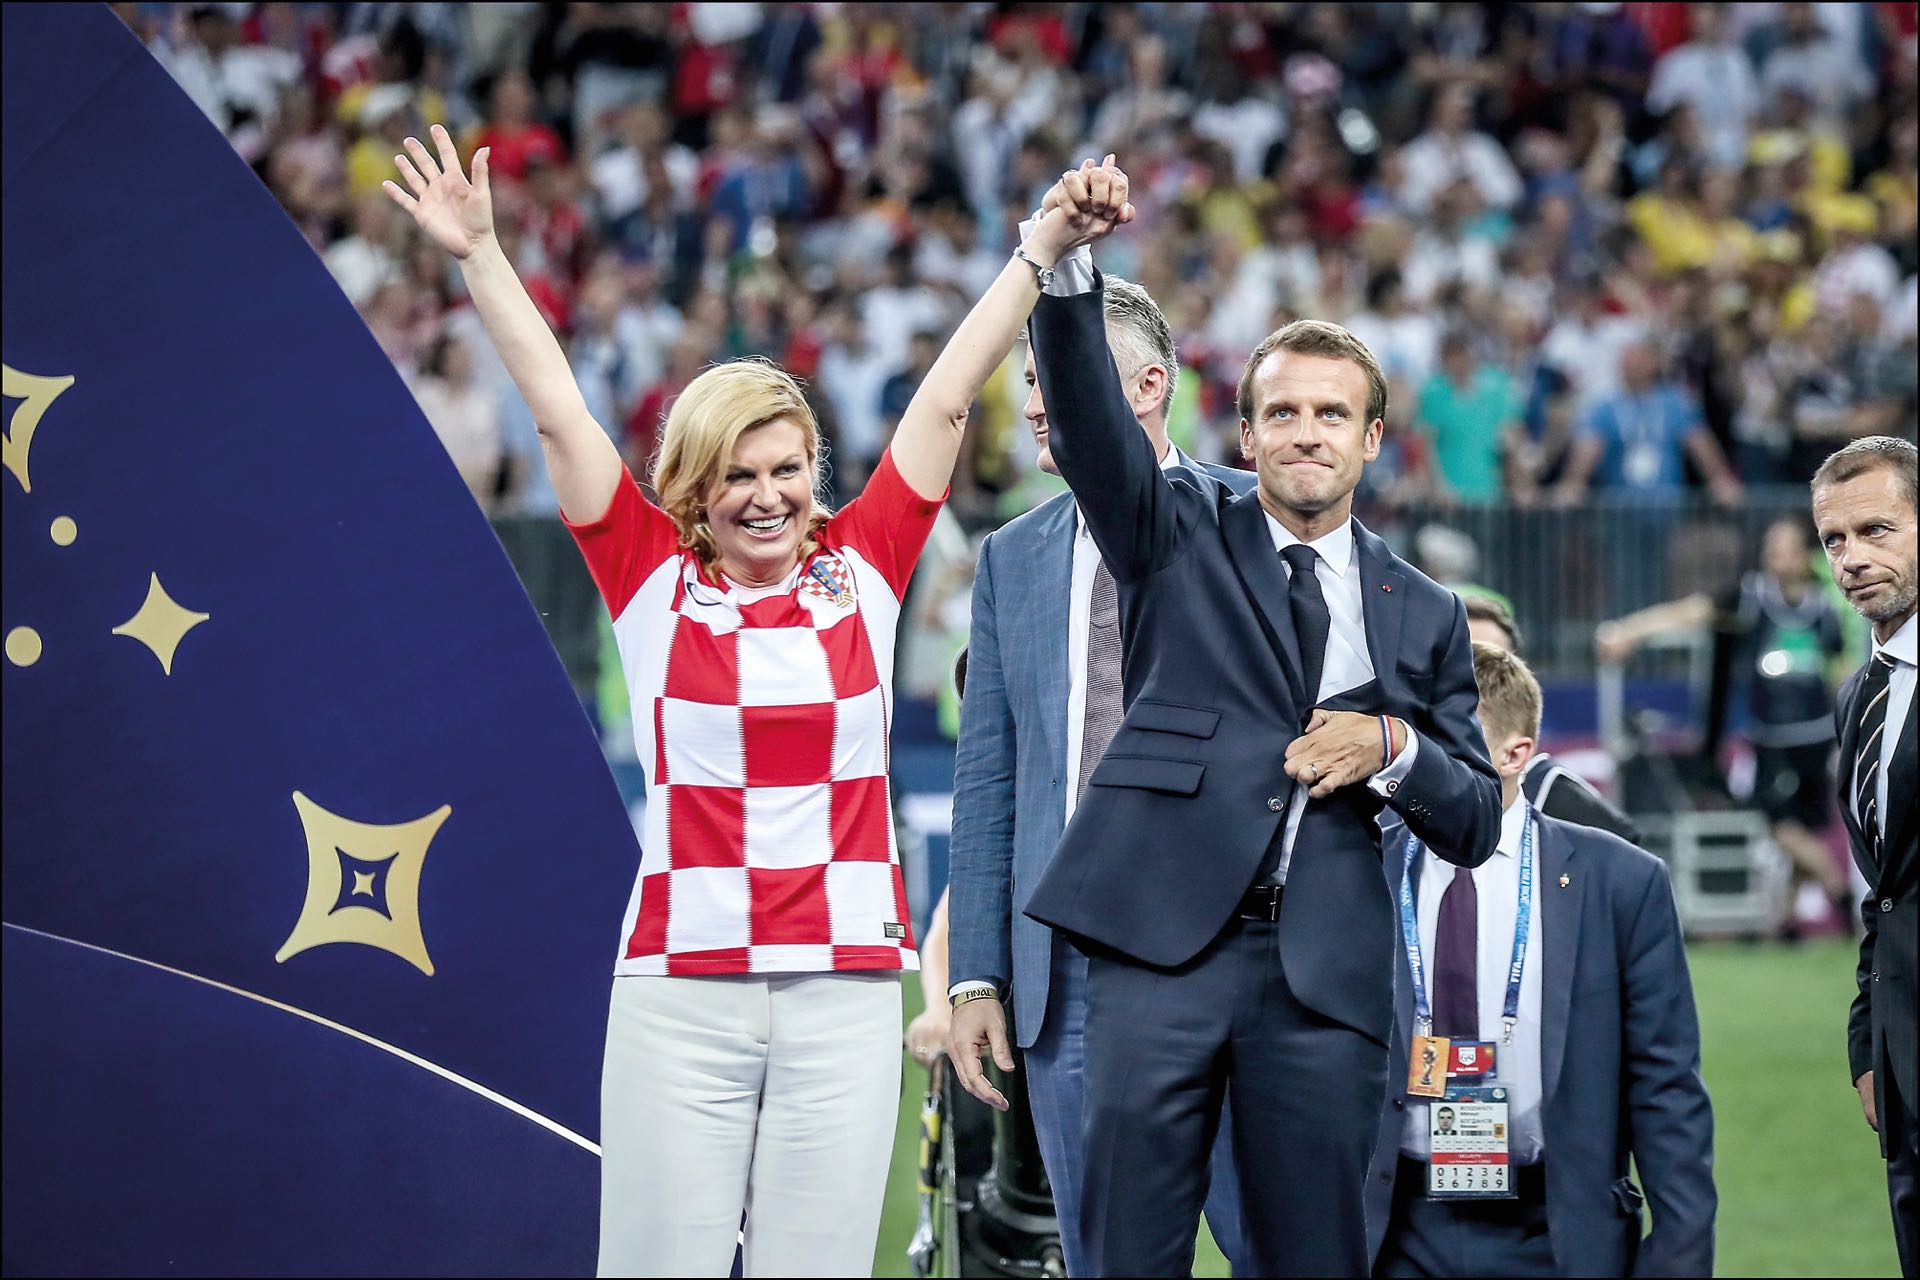 Emmanuel Macron y Croatie Kolinda Grabar-Kitarovic - Finale de la Coupe du Monde de Football 2018 en Russie ‡ Moscou, opposant la France ‡ la Croatie (4-2). Le 15 juillet 2018 -- Finale of the Football World Cup 2018 in Russia, Moscow. On july 15th 2018